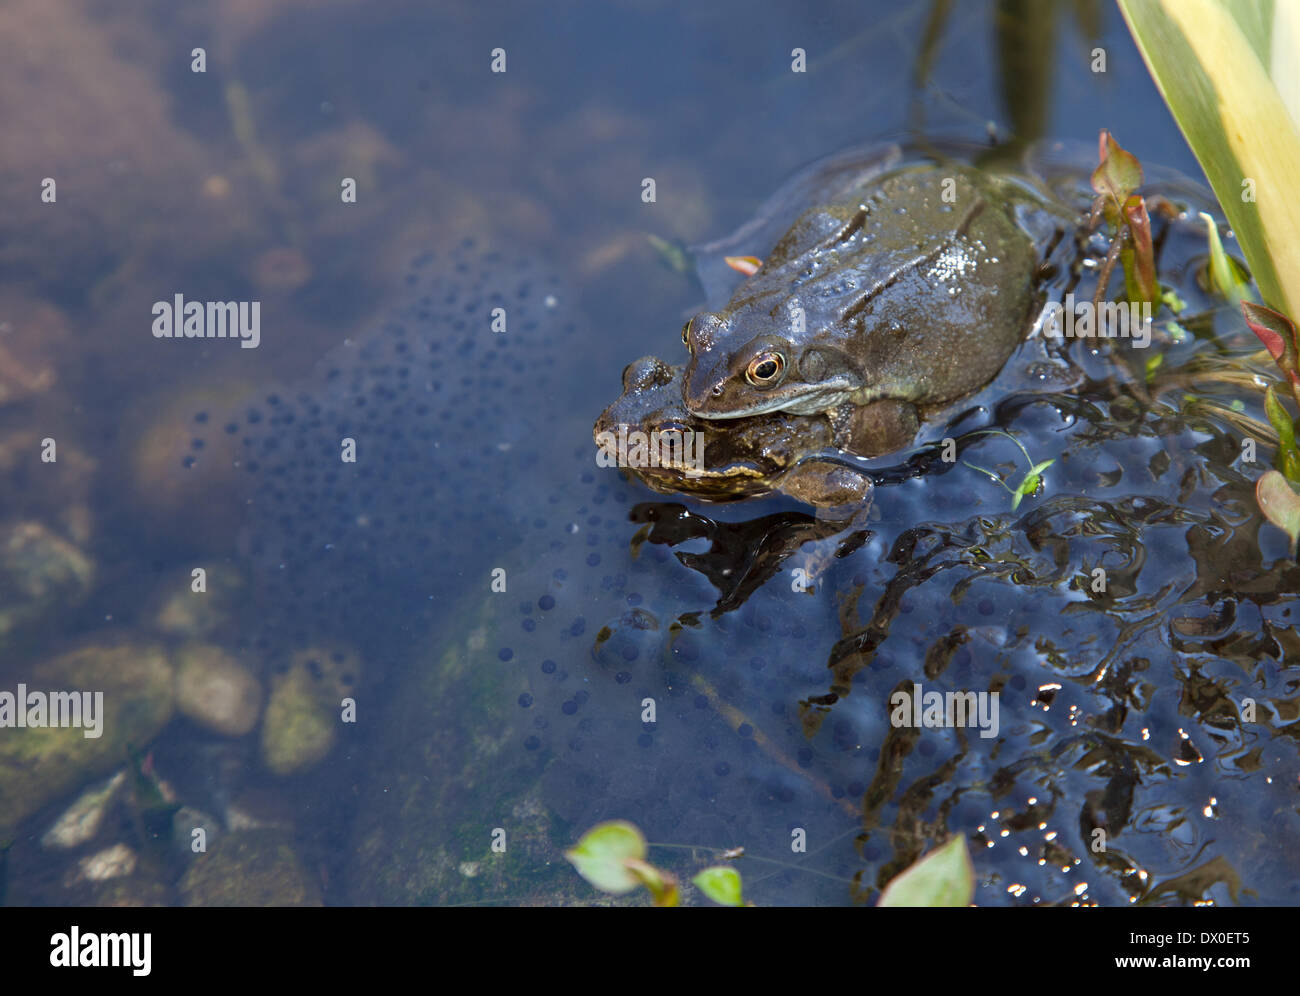 Love is in the air - and the pond too. Spring has well and truly sprung as two frogs make the most of the beautiful Stock Photo